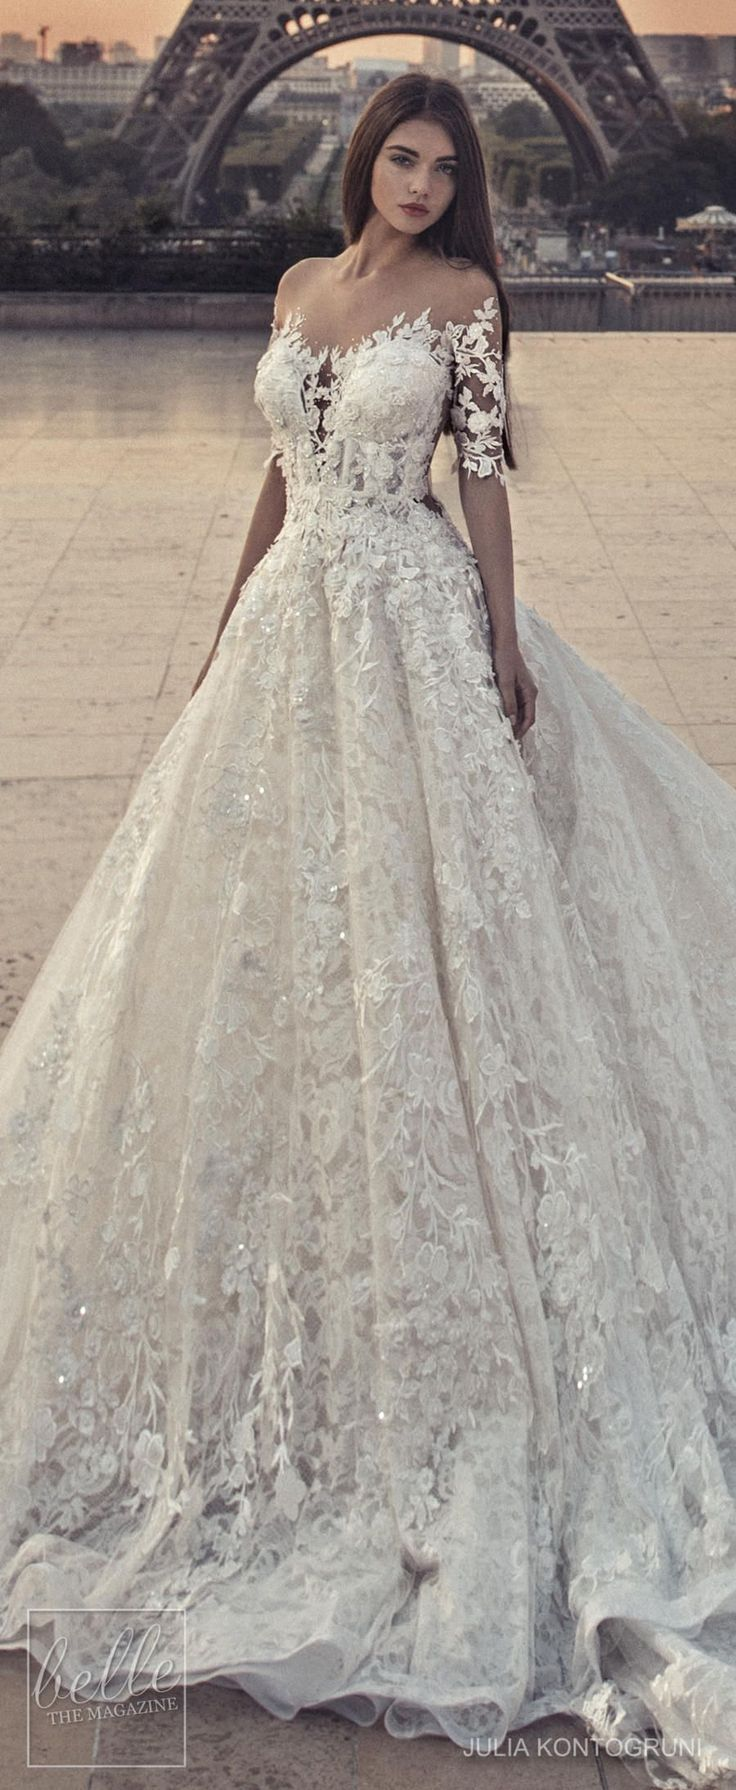 Julia Kontogruni Wedding Dress Collection 2018